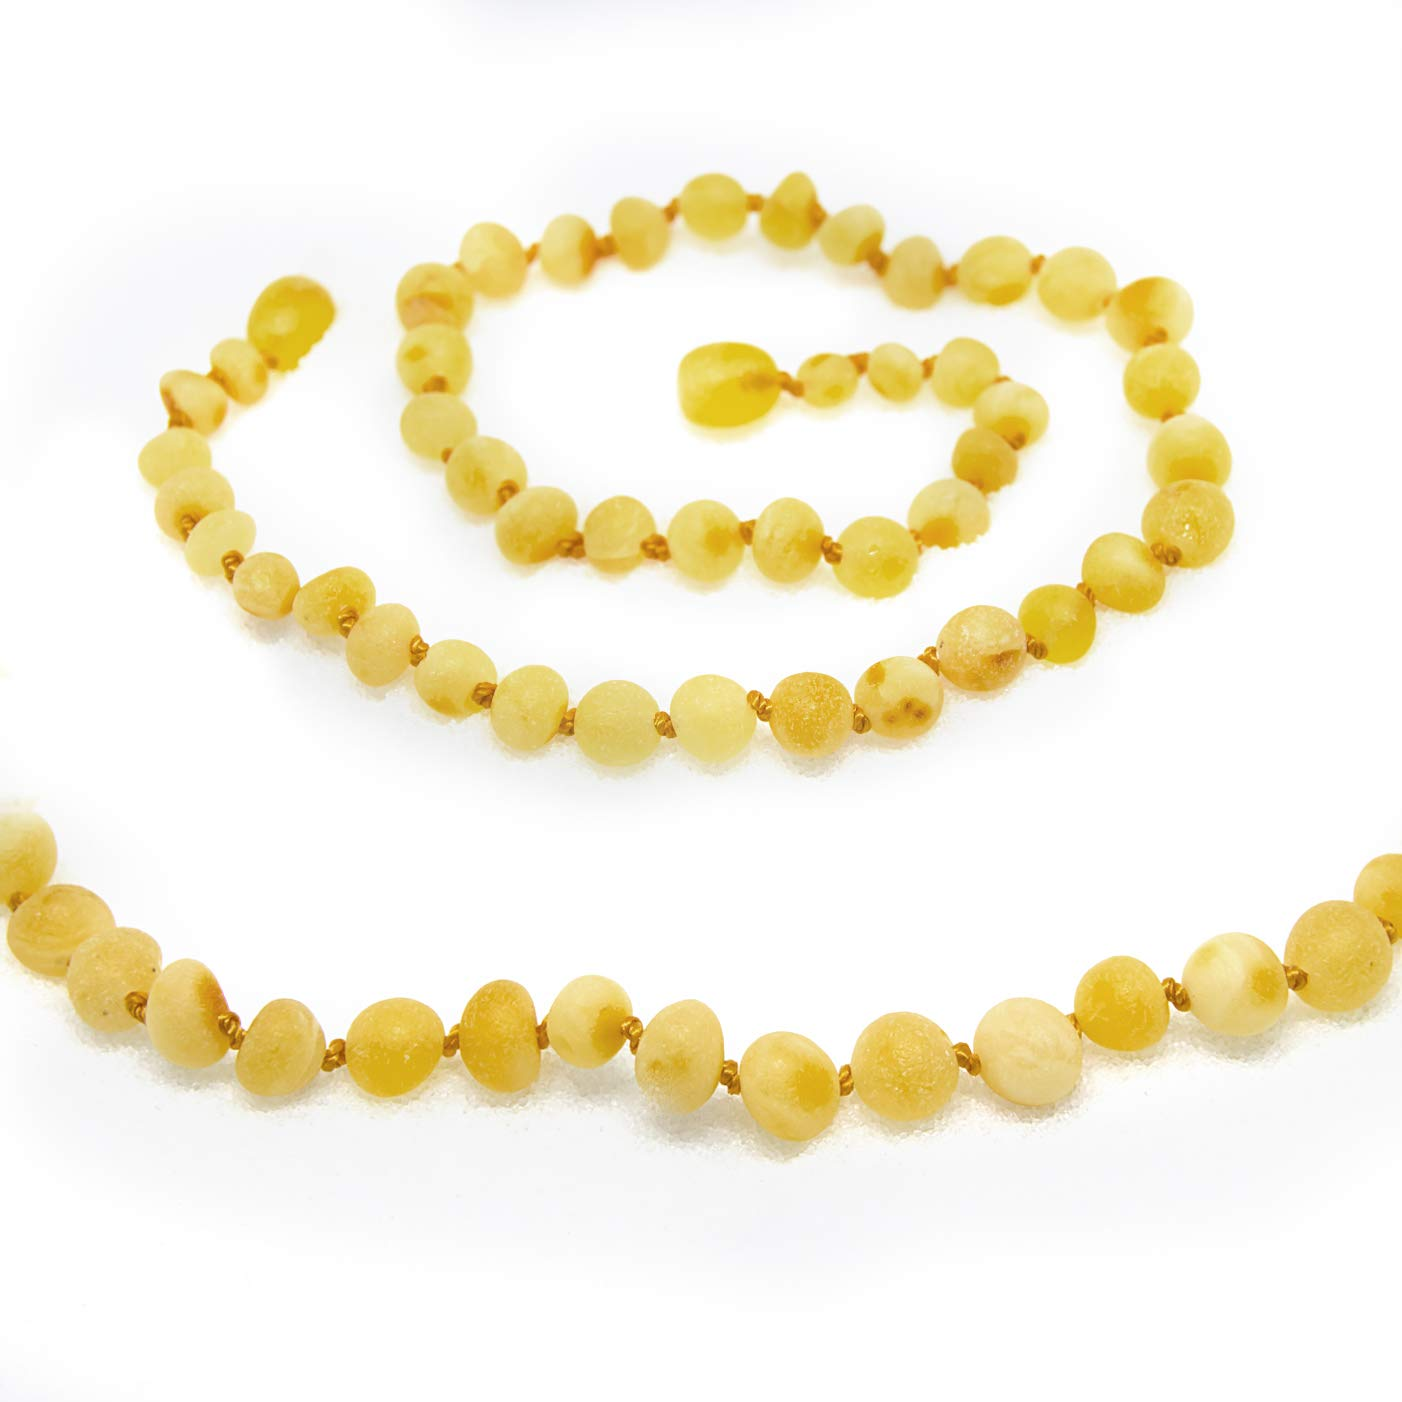 12-12.5 Inches size for boy or girl honey//agate//aqua The Art of Cure Original Baltic Amber Necklace- Polished Handmade